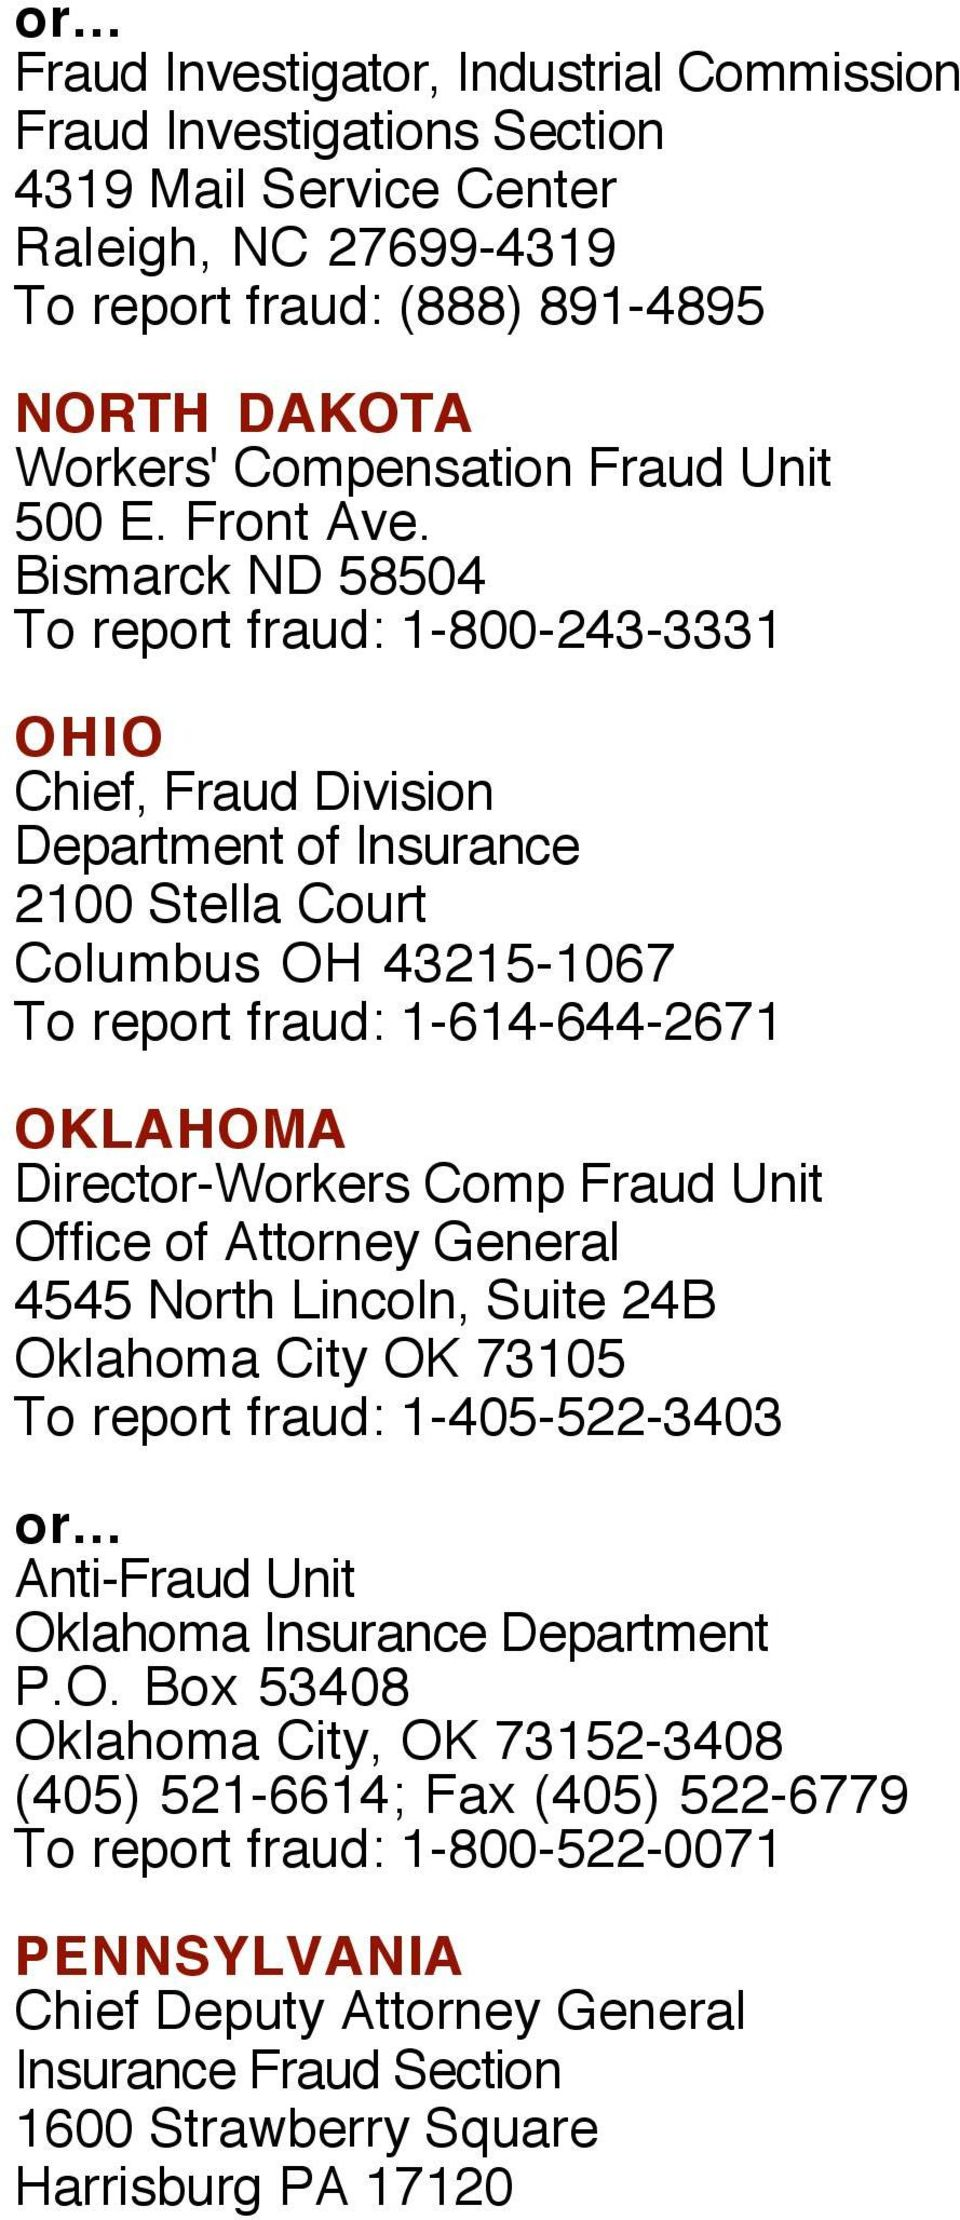 Bismarck ND 58504 To report fraud: 1-800-243-3331 OHIO Chief, Fraud Division 2100 Stella Court Columbus OH 43215-1067 To report fraud: 1-614-644-2671 OKLAHOMA Director-Workers Comp Fraud Unit